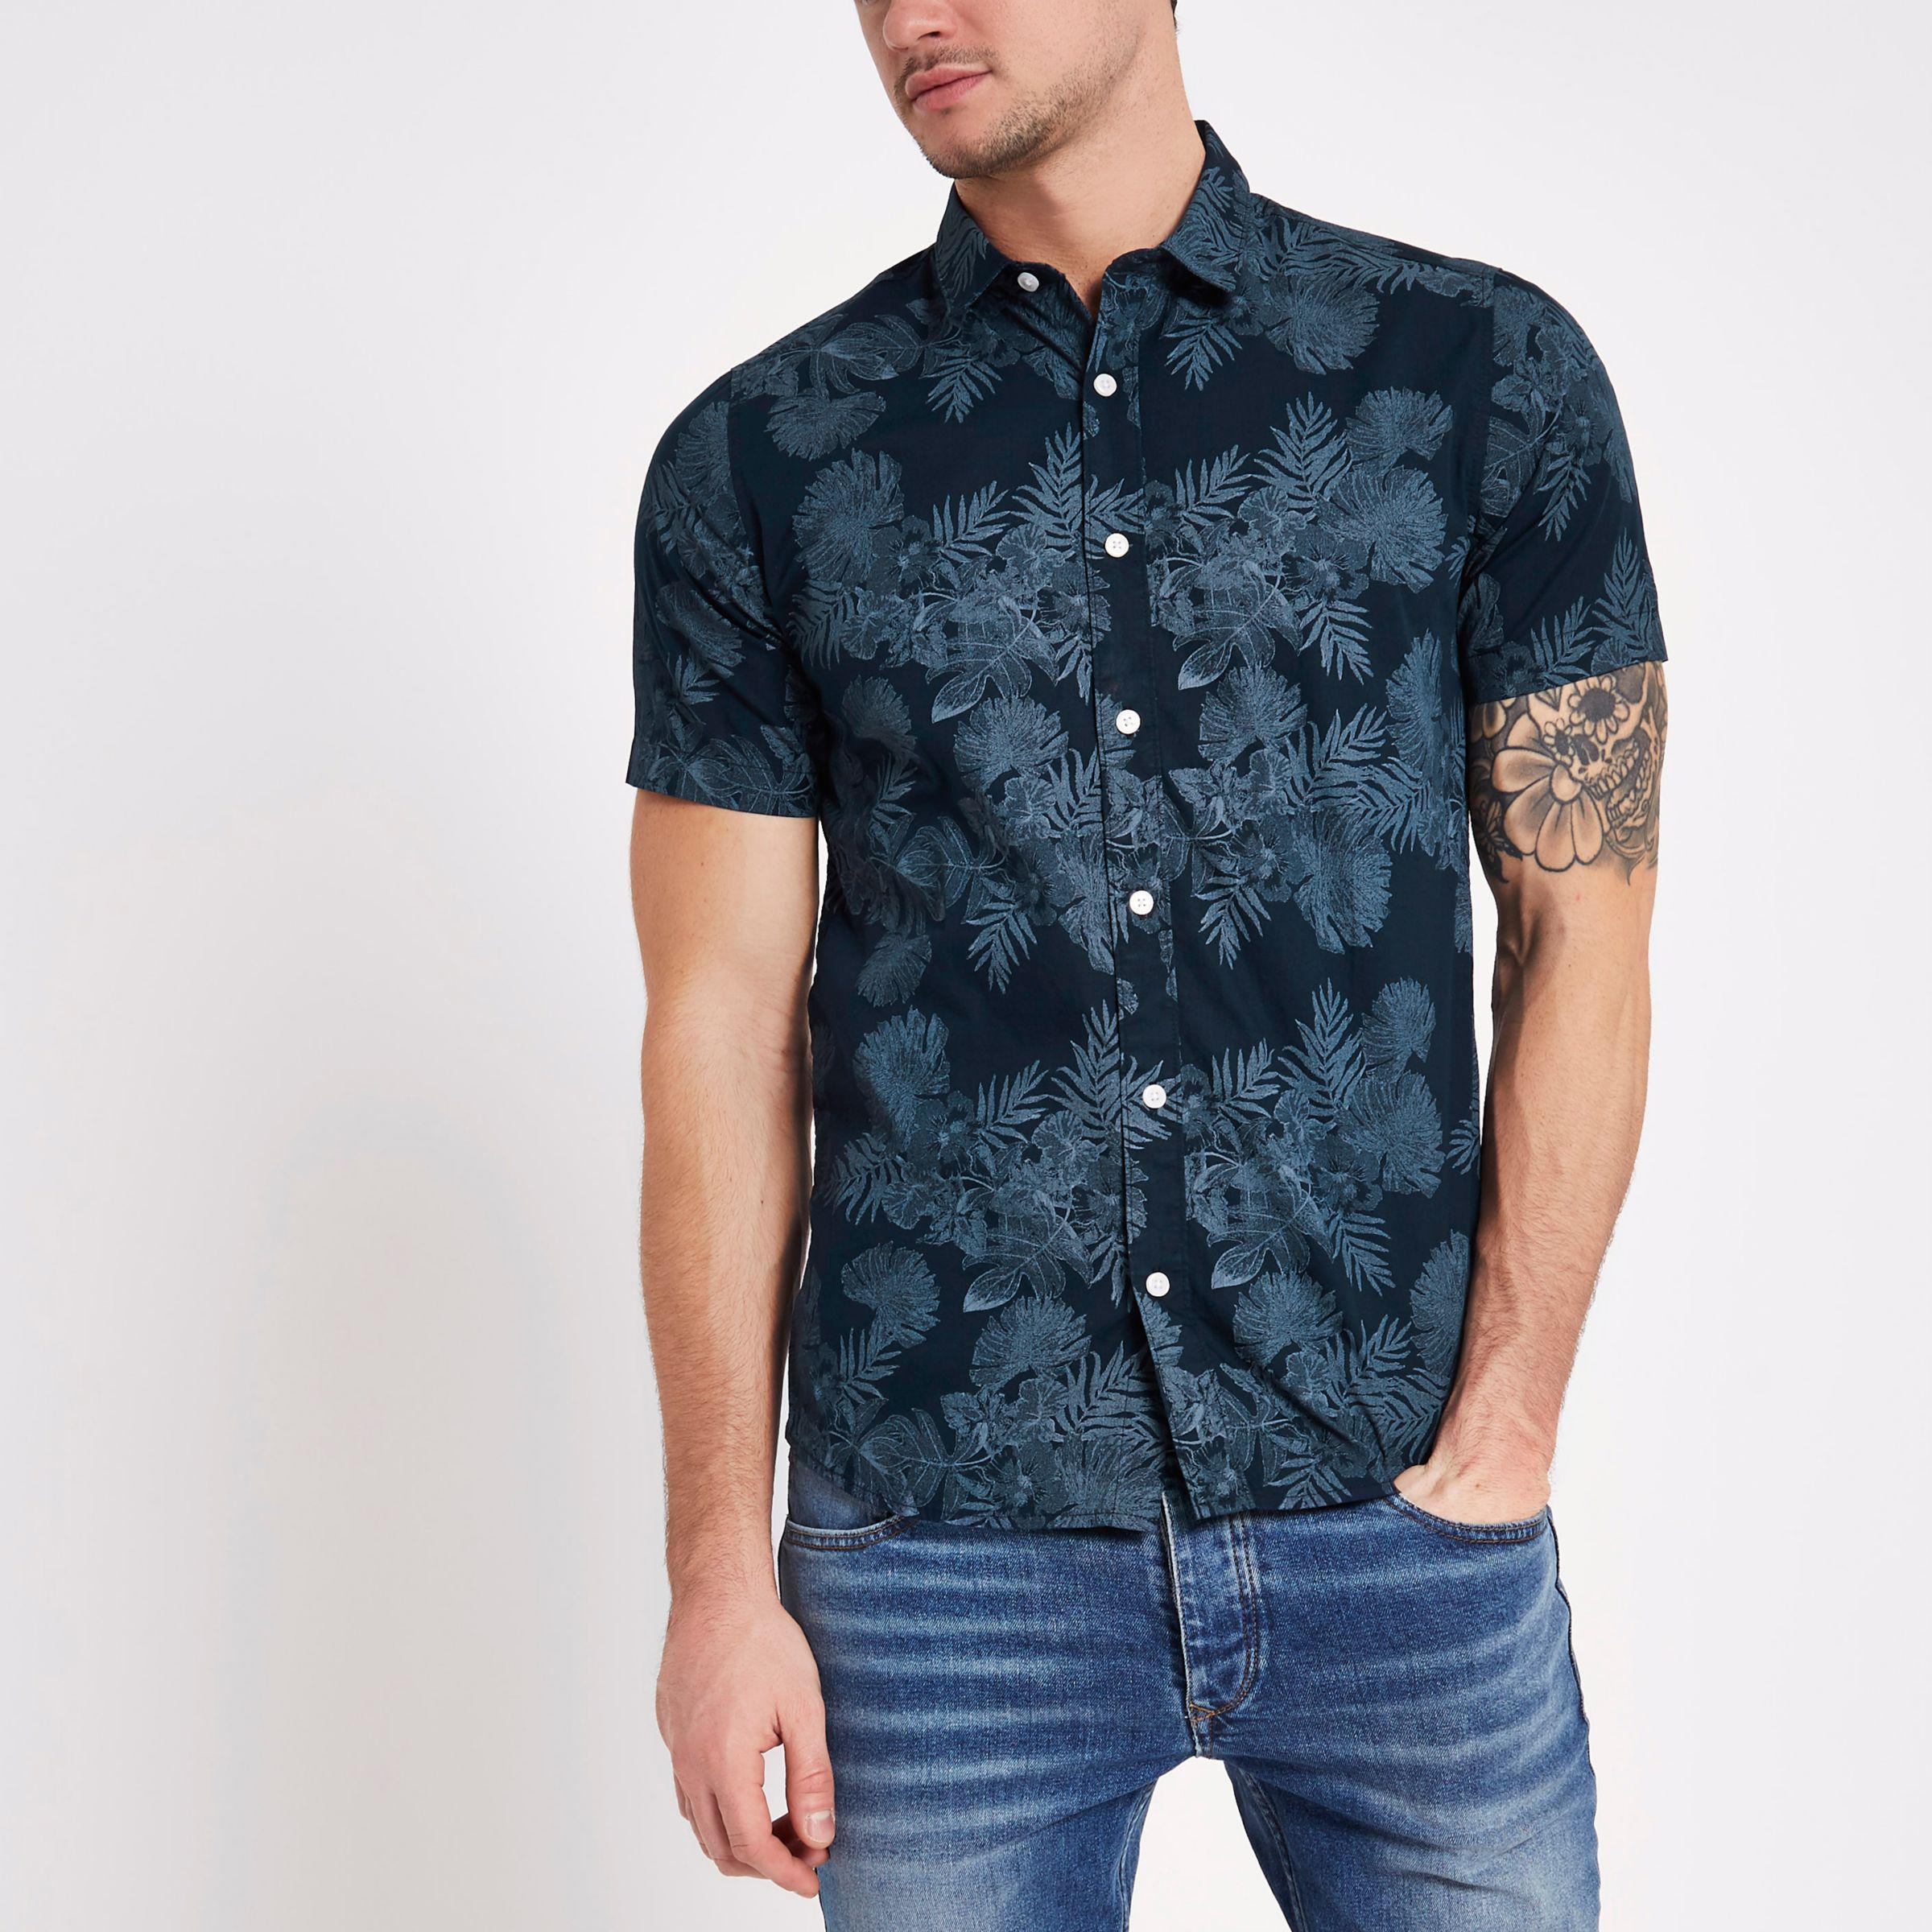 River island only sons navy floral slim fit shirt in for Navy slim fit shirt